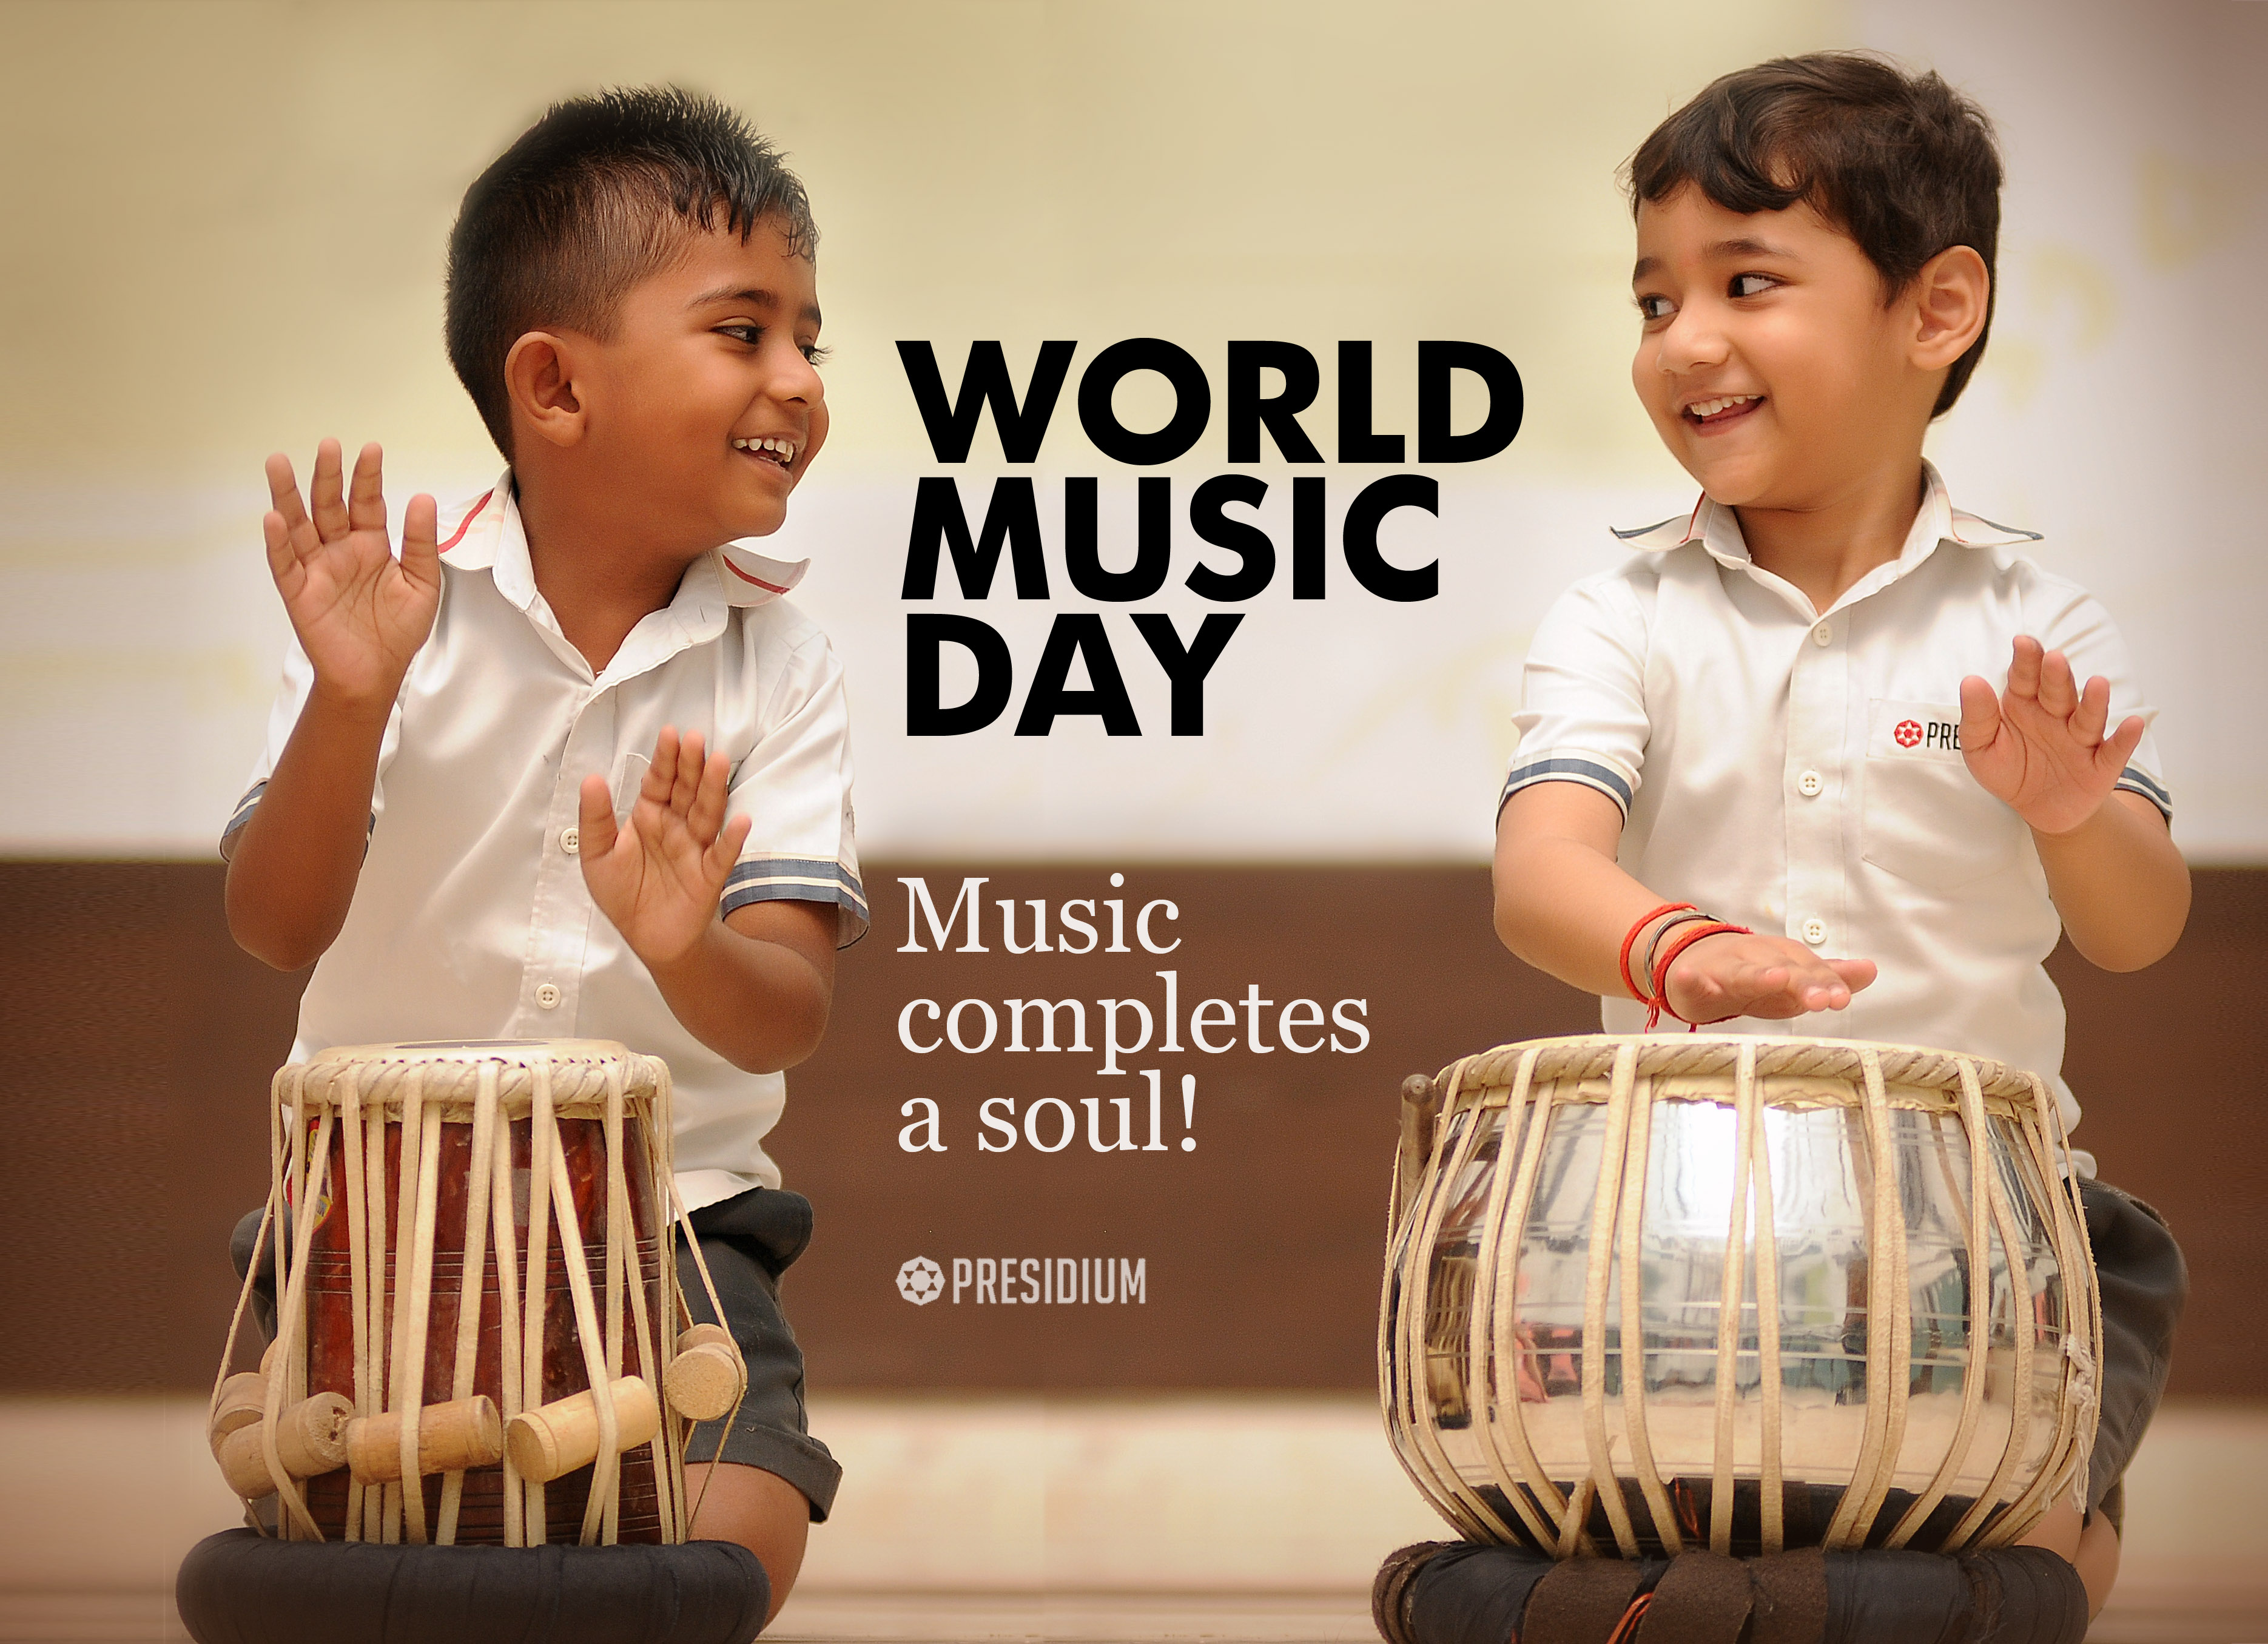 HAPPY WORLD MUSIC DAY: TIME TO LISTEN TO THE RHYTHM OF THE HEART